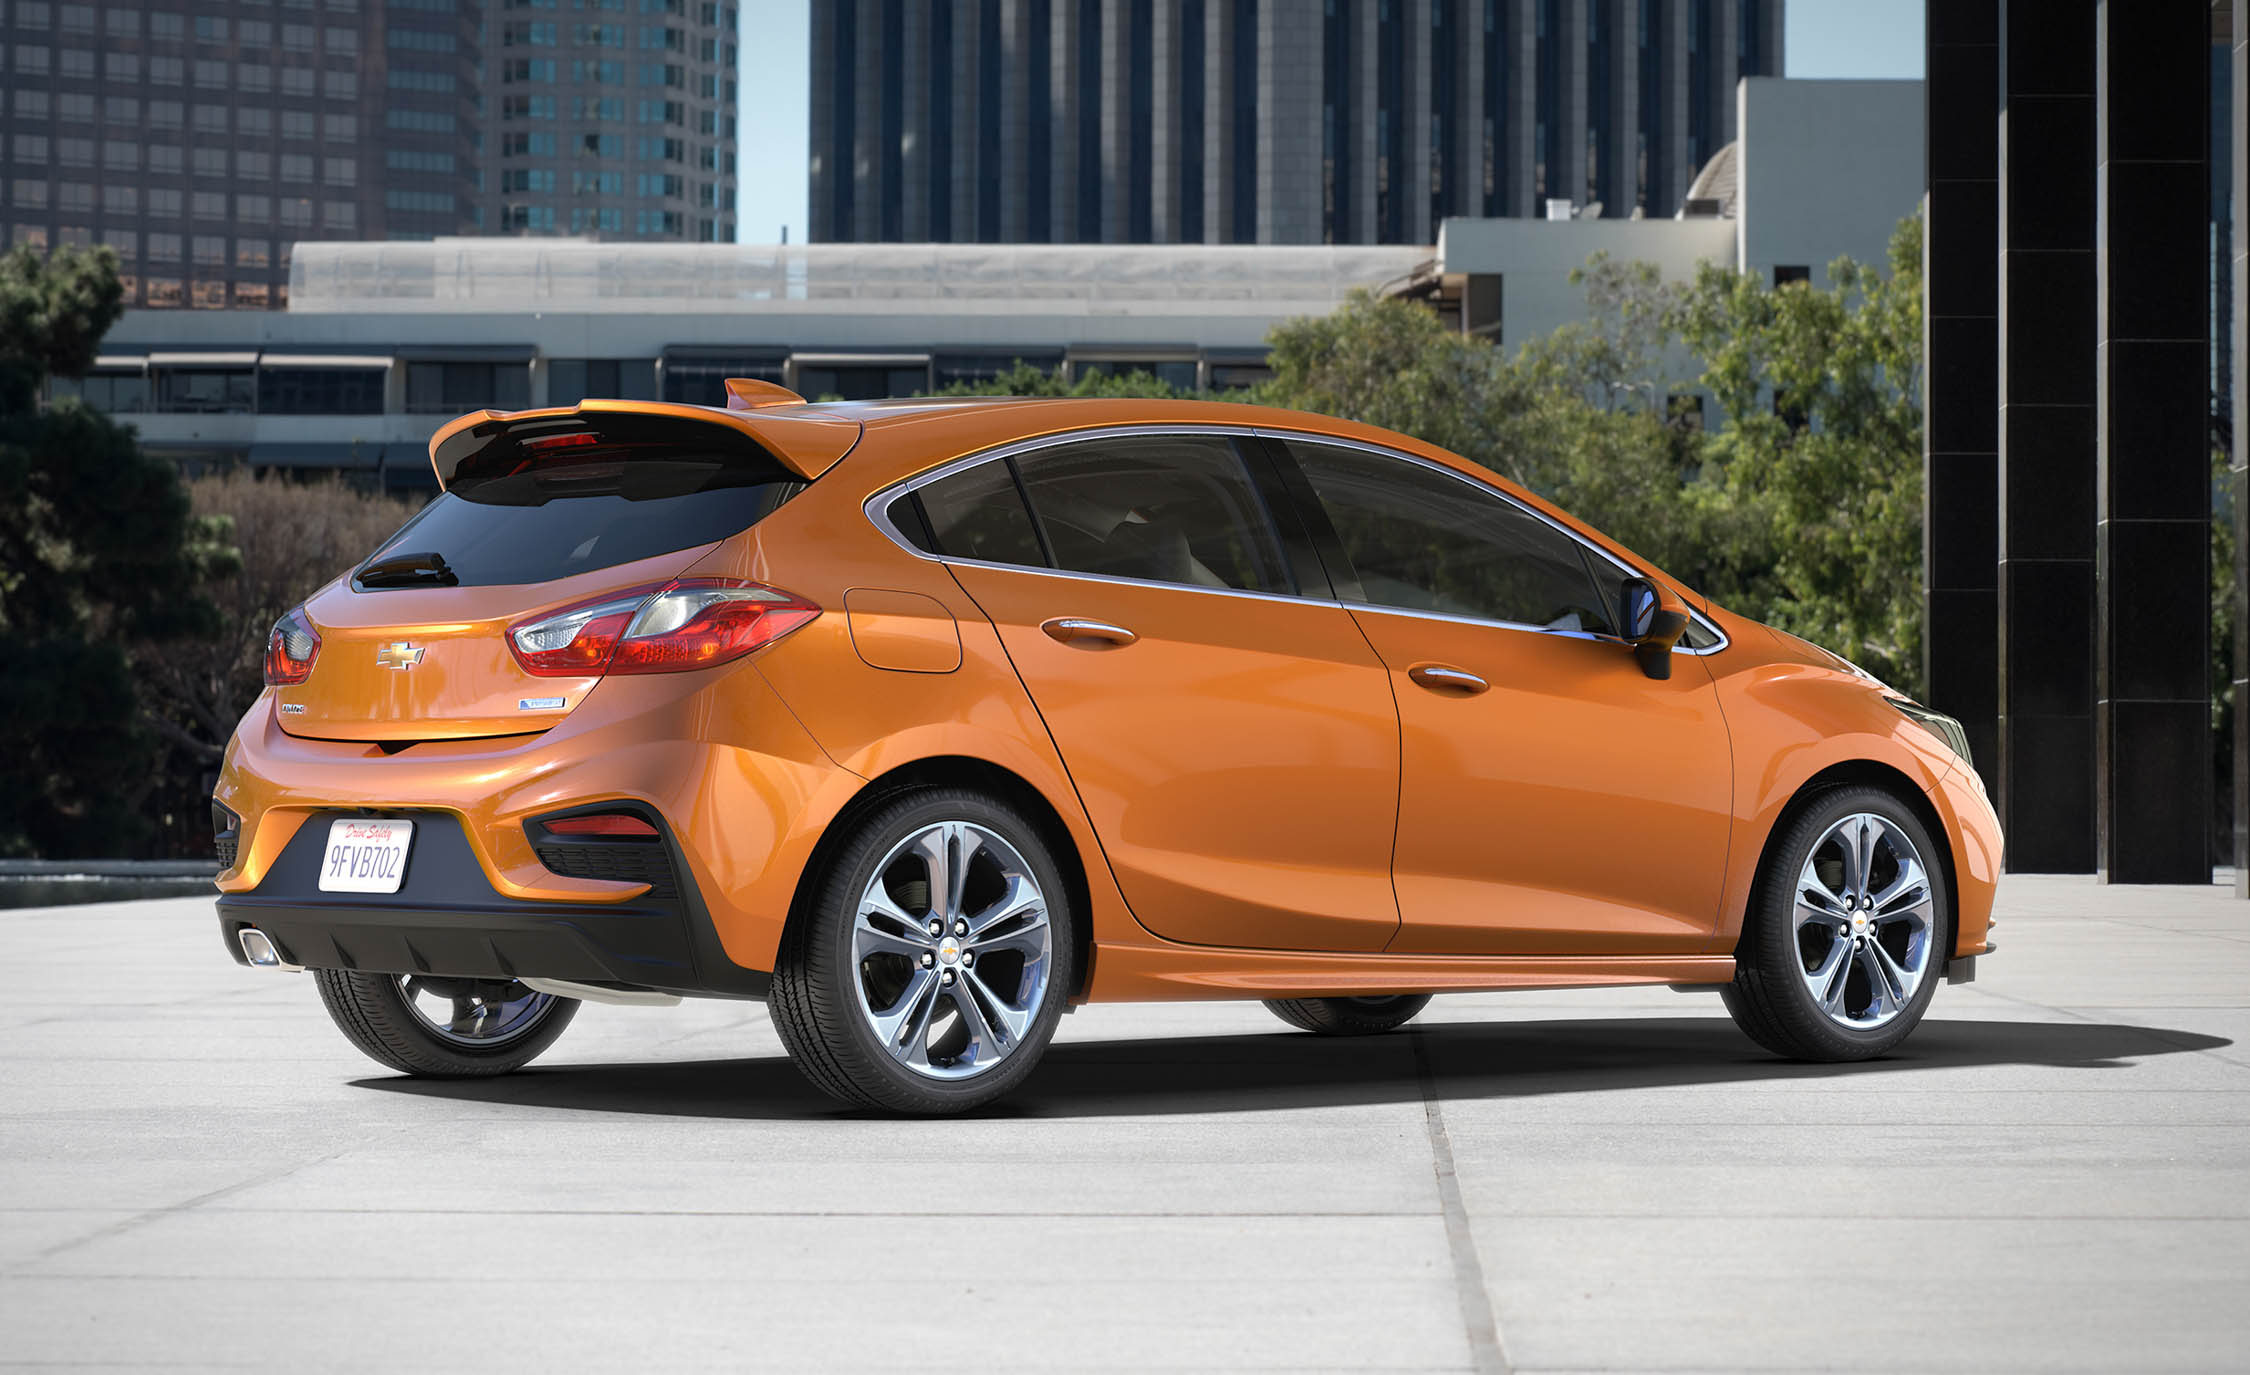 2017 Chevrolet Cruze Hatchback (View 3 of 9)